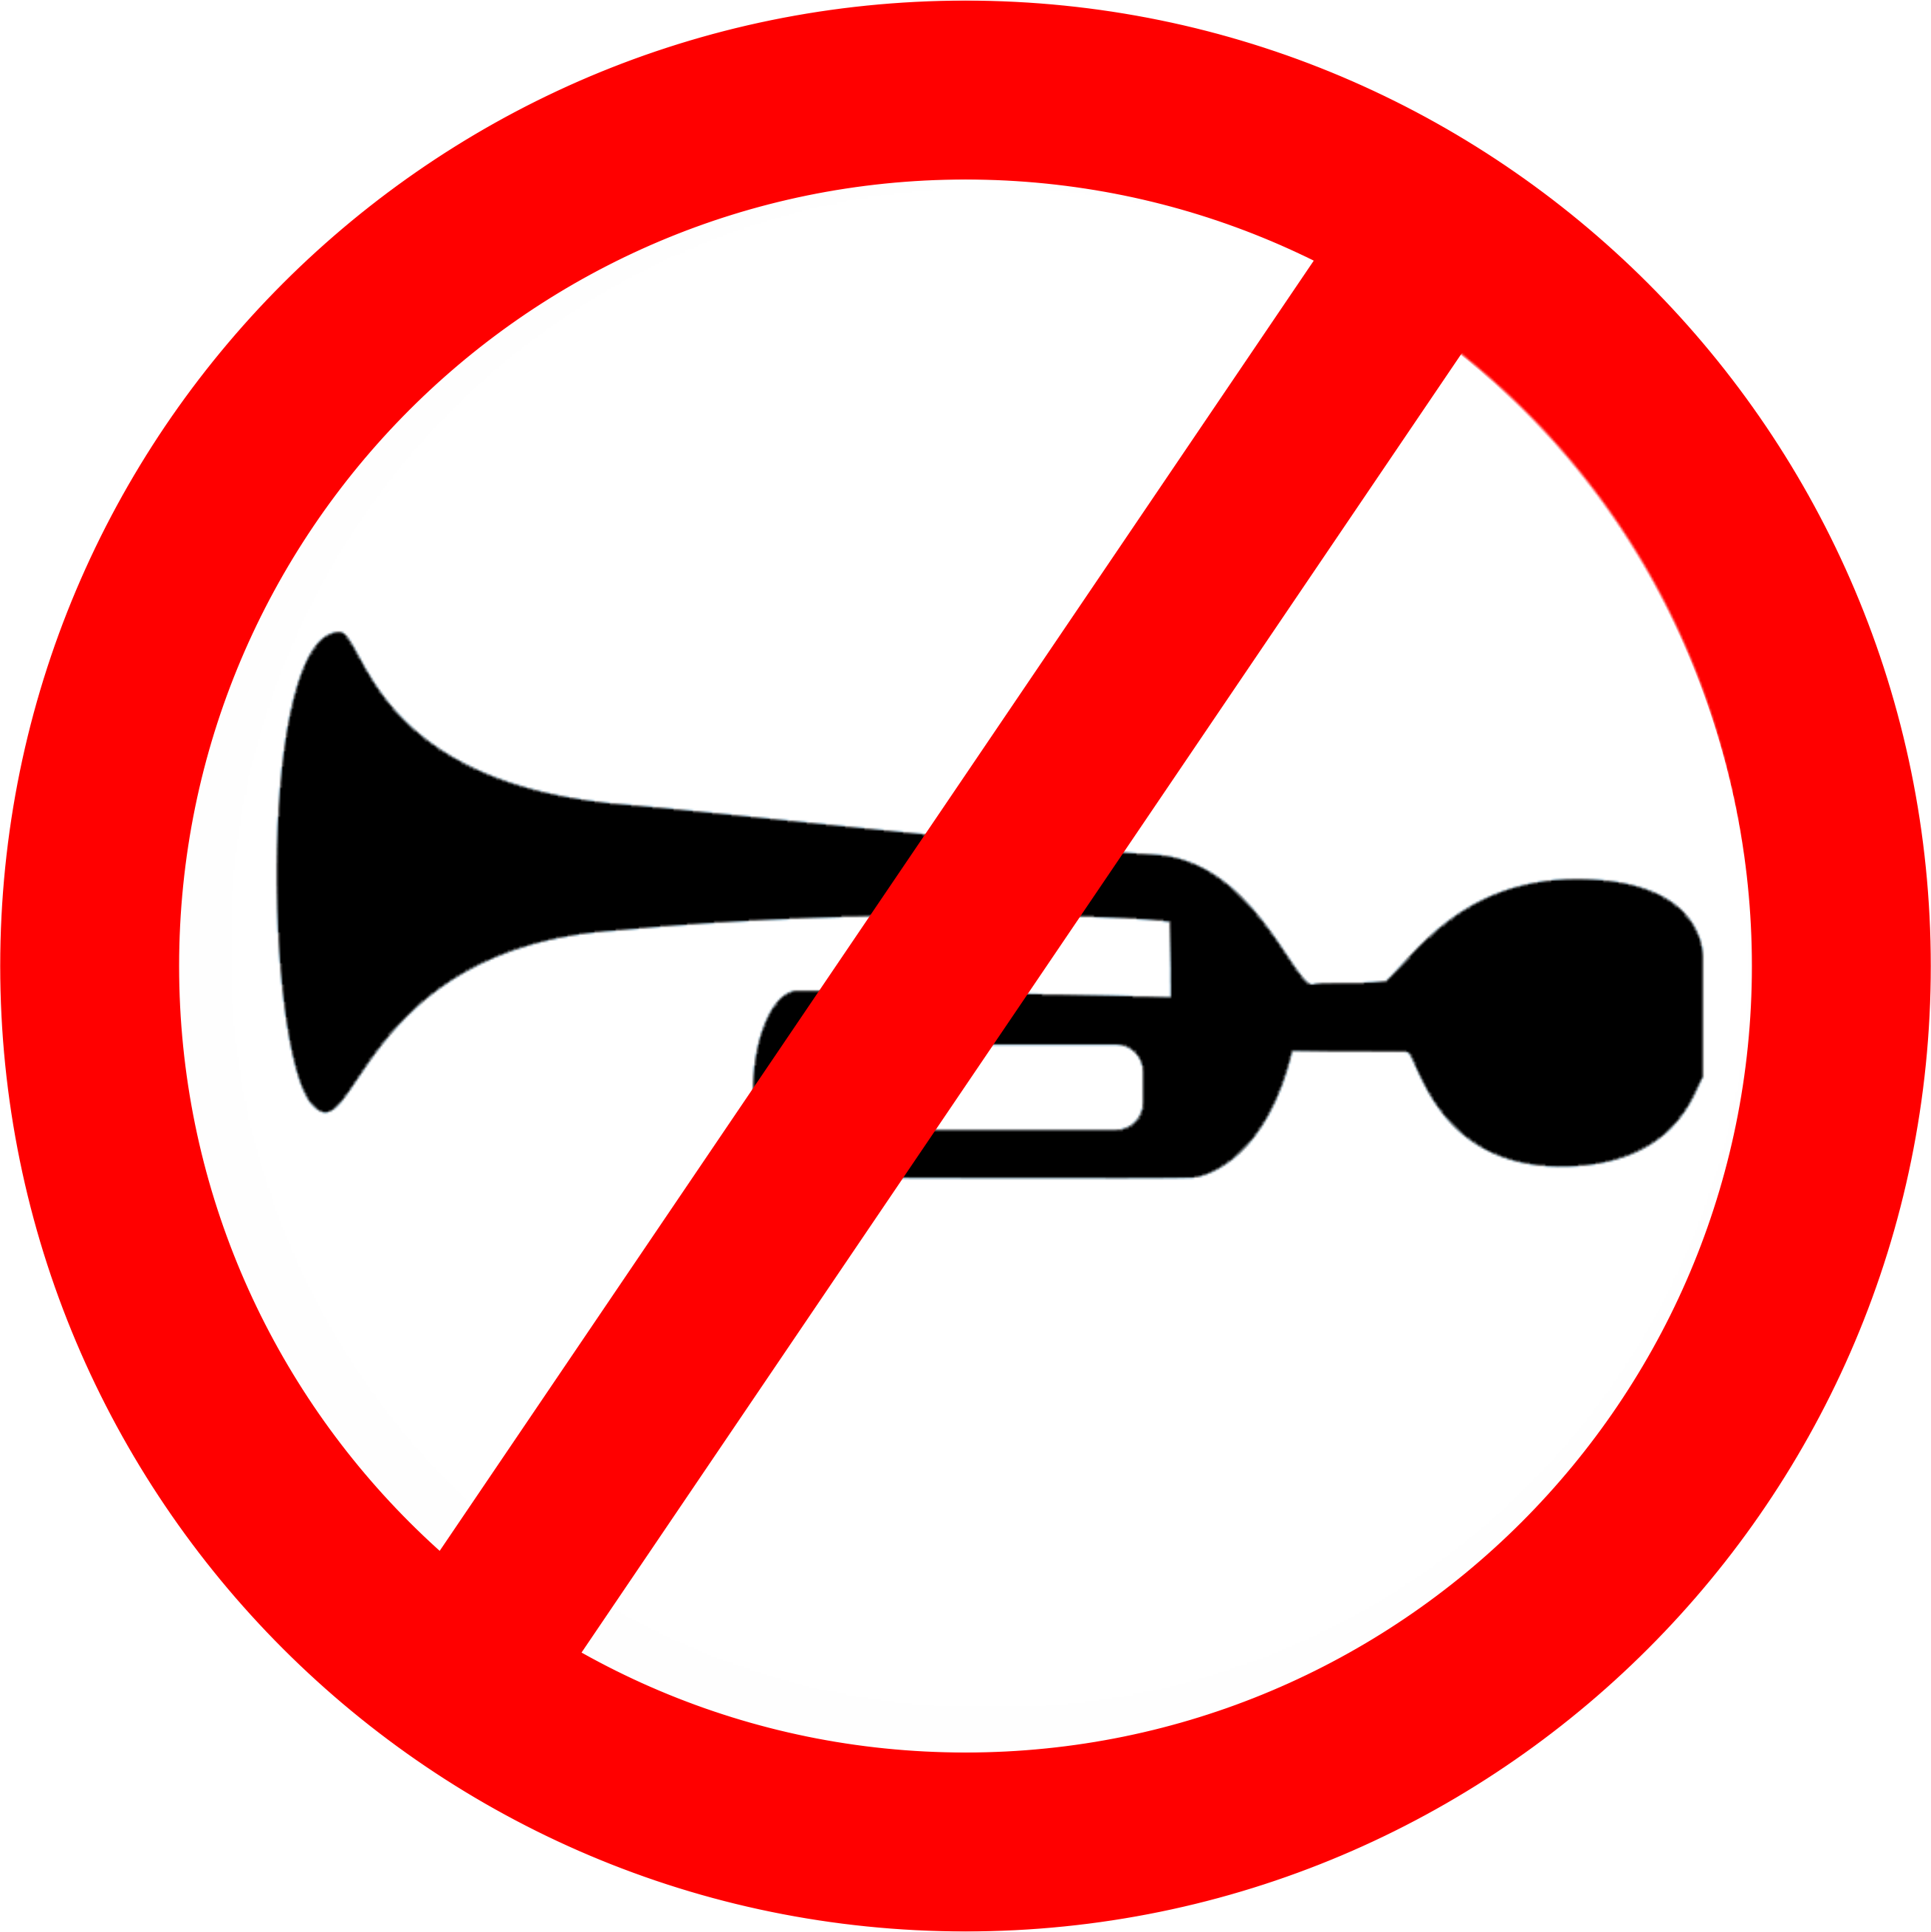 File horn wikimedia commons for De signs